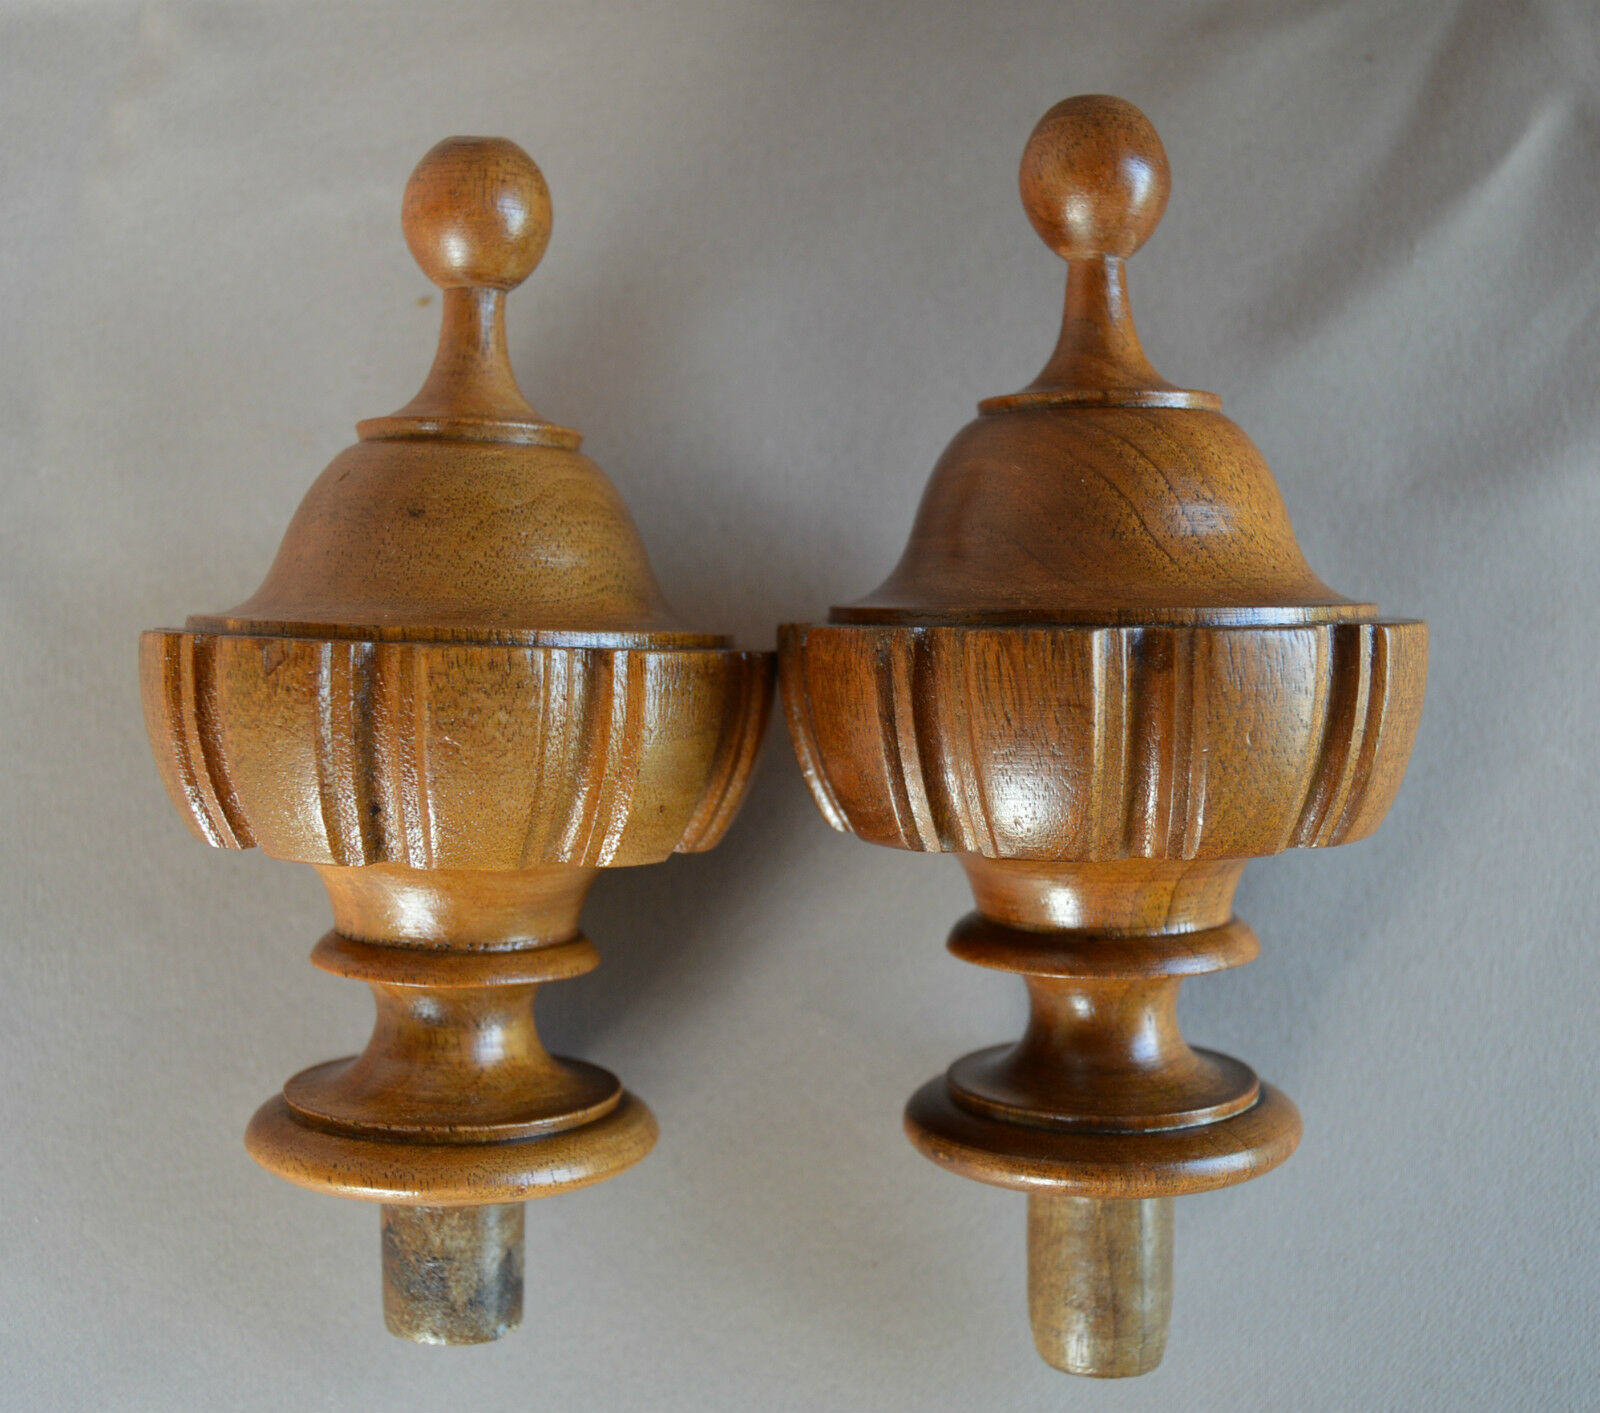 Walnut Wood Pair of Curtain-Rod Bed Finials, French Architectural Home Decor n°1